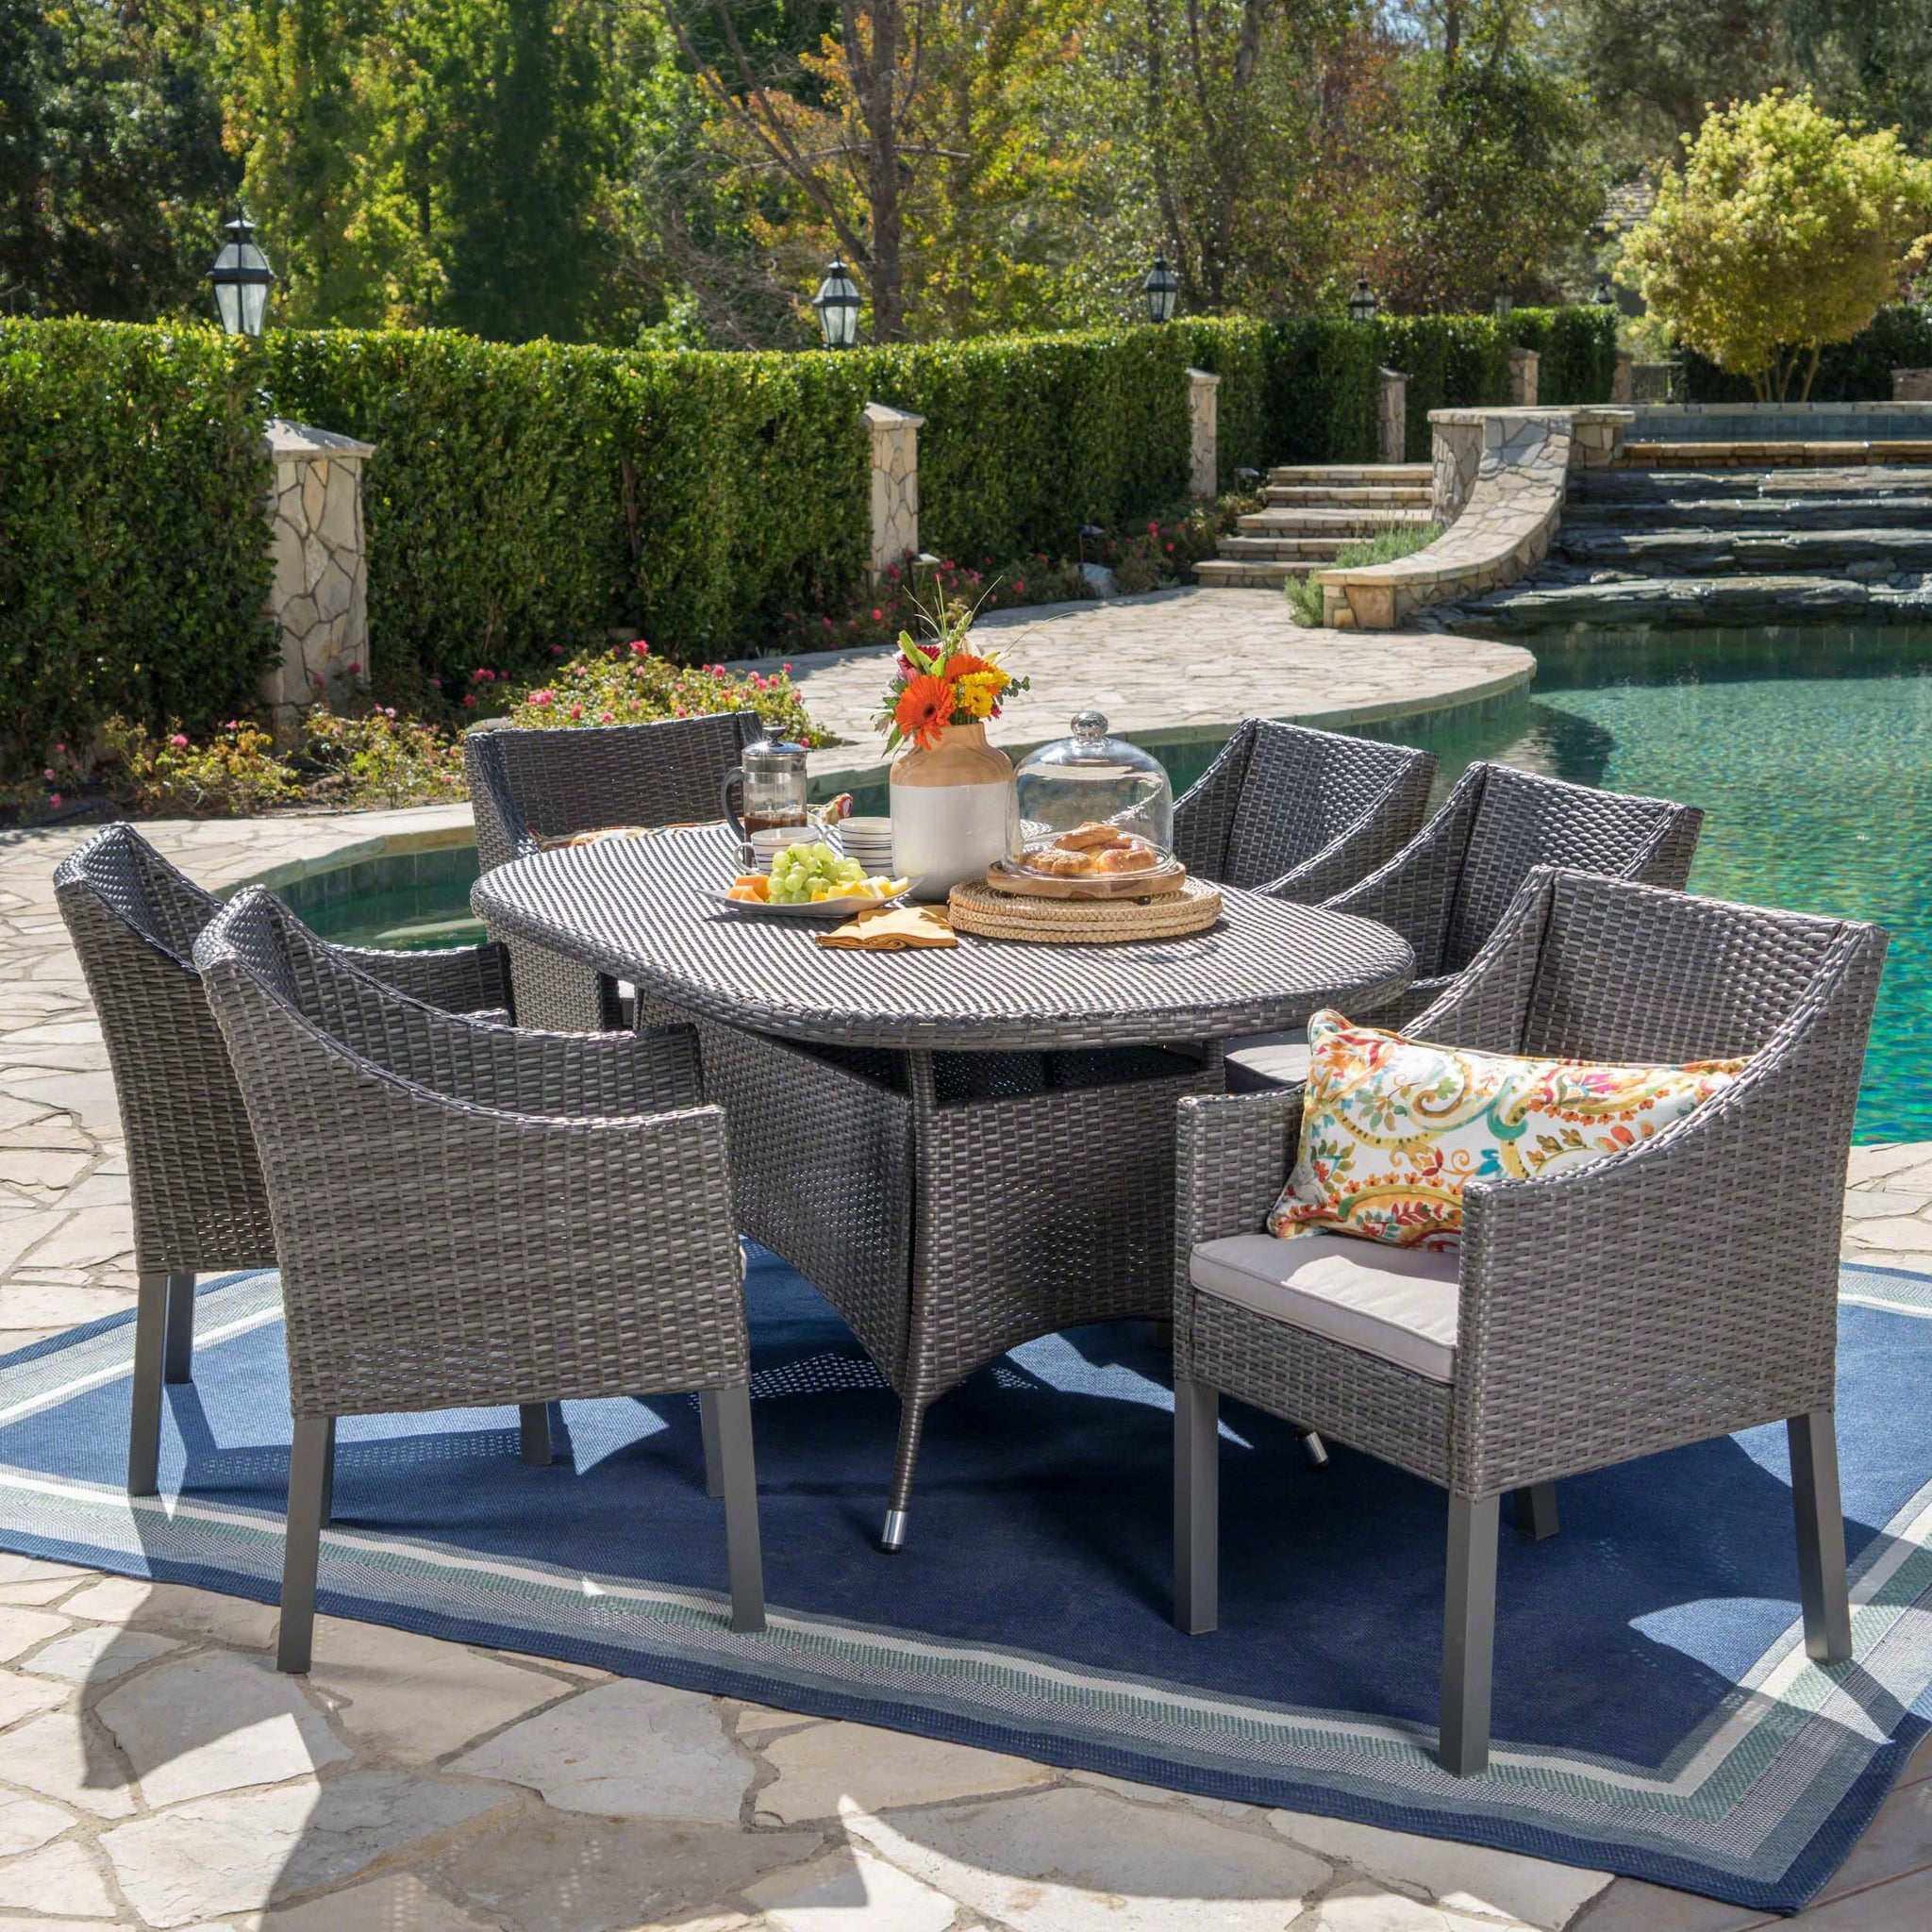 Foster Outdoor 7 Piece Wicker Oval Dining Set With Water Resistant Cushions